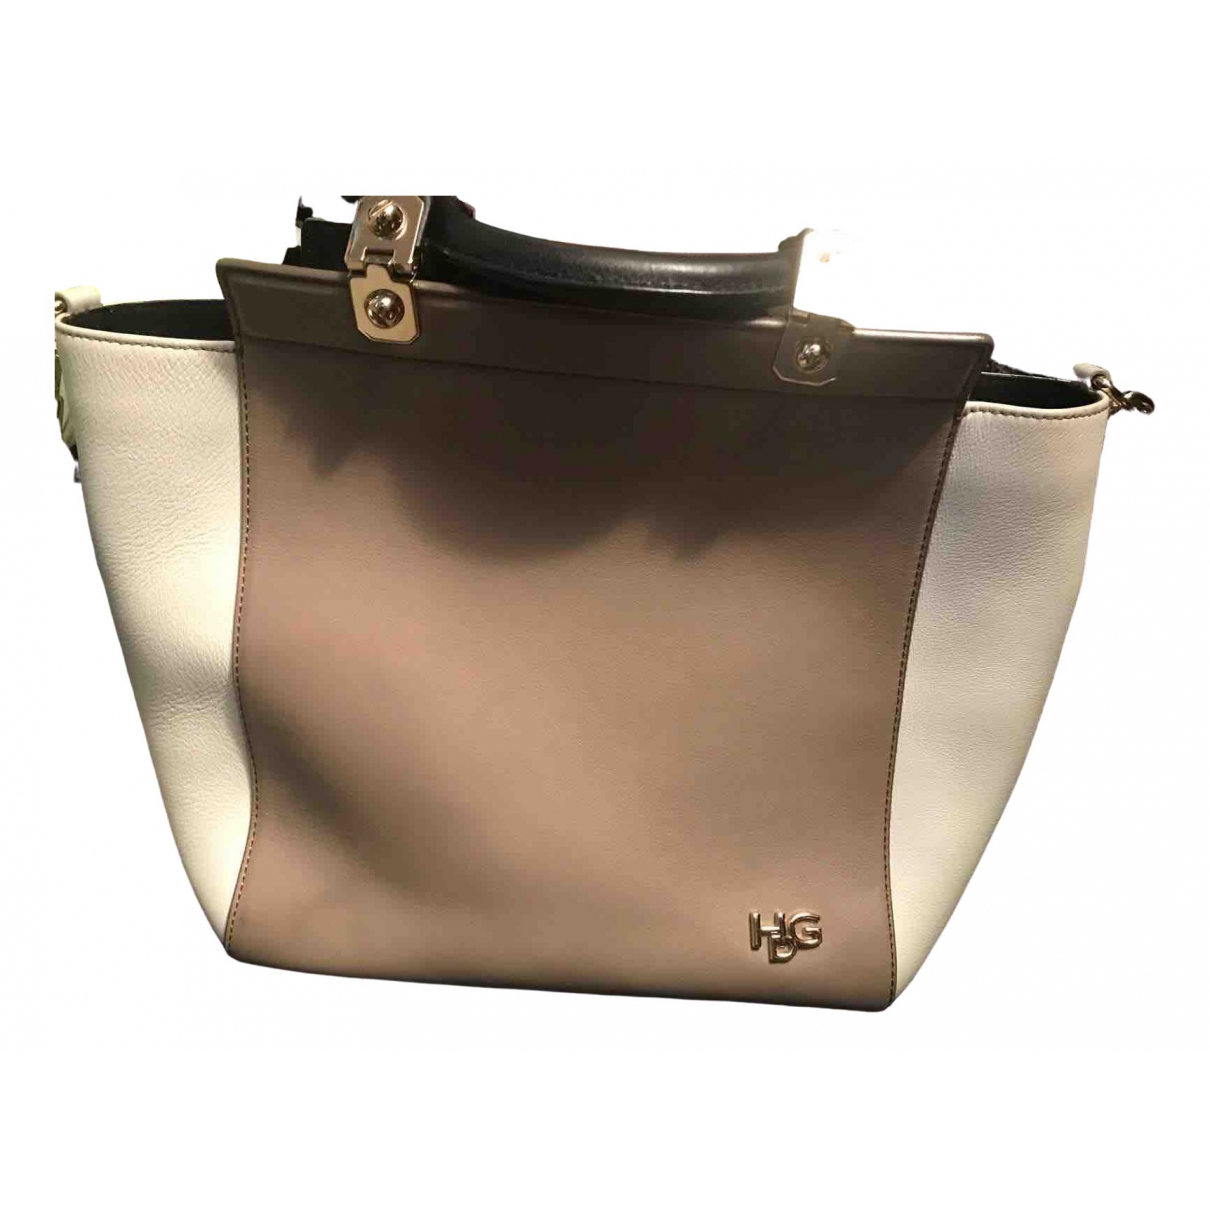 Givenchy House de Givenchy Beige Leather handbag for Women \N